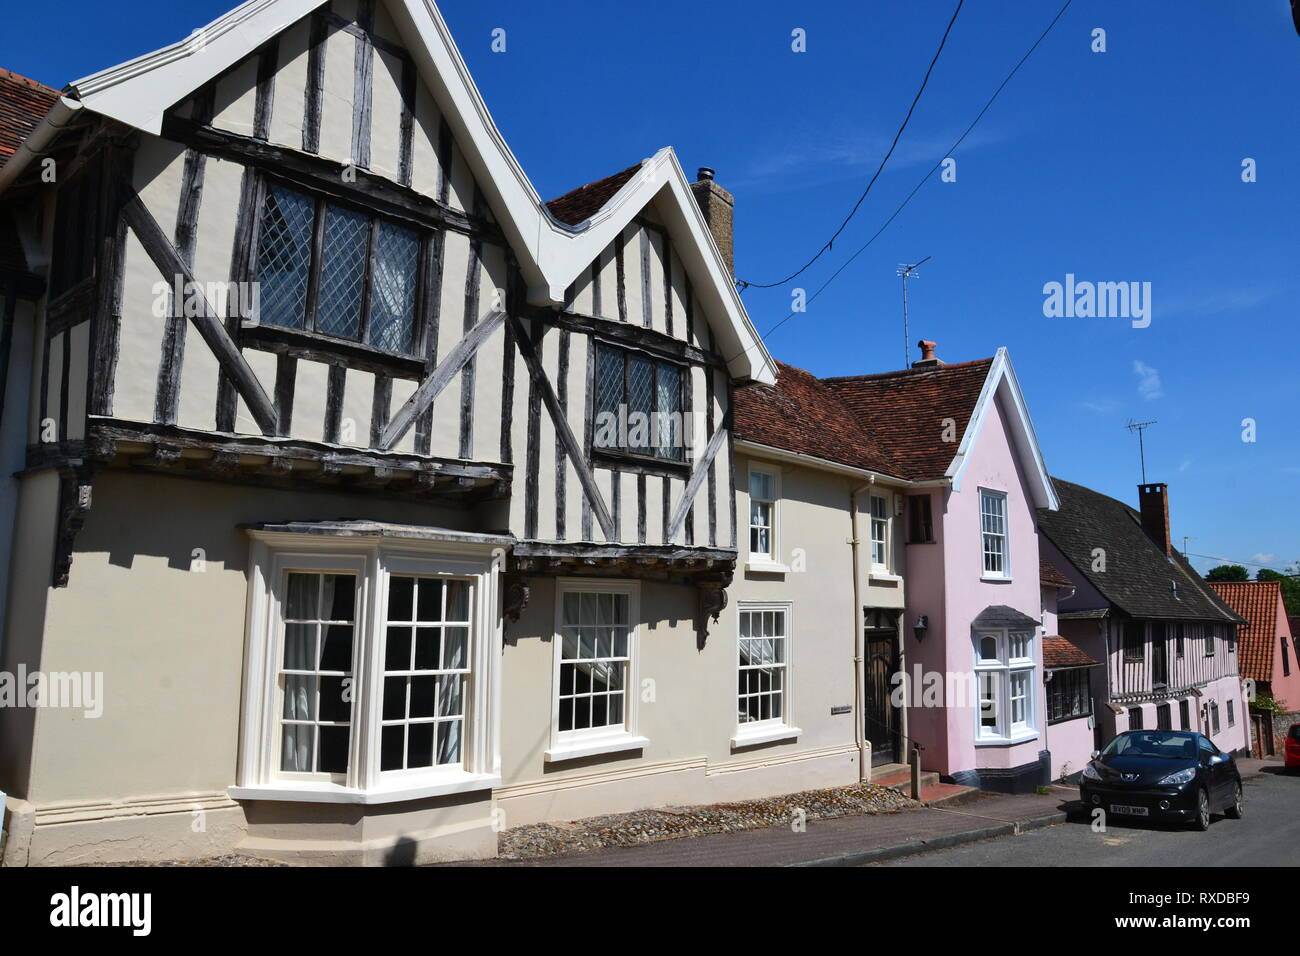 Historic Tudor half-timbered buildings in Lavenham, Suffolk, UK. Sunny day. - Stock Image